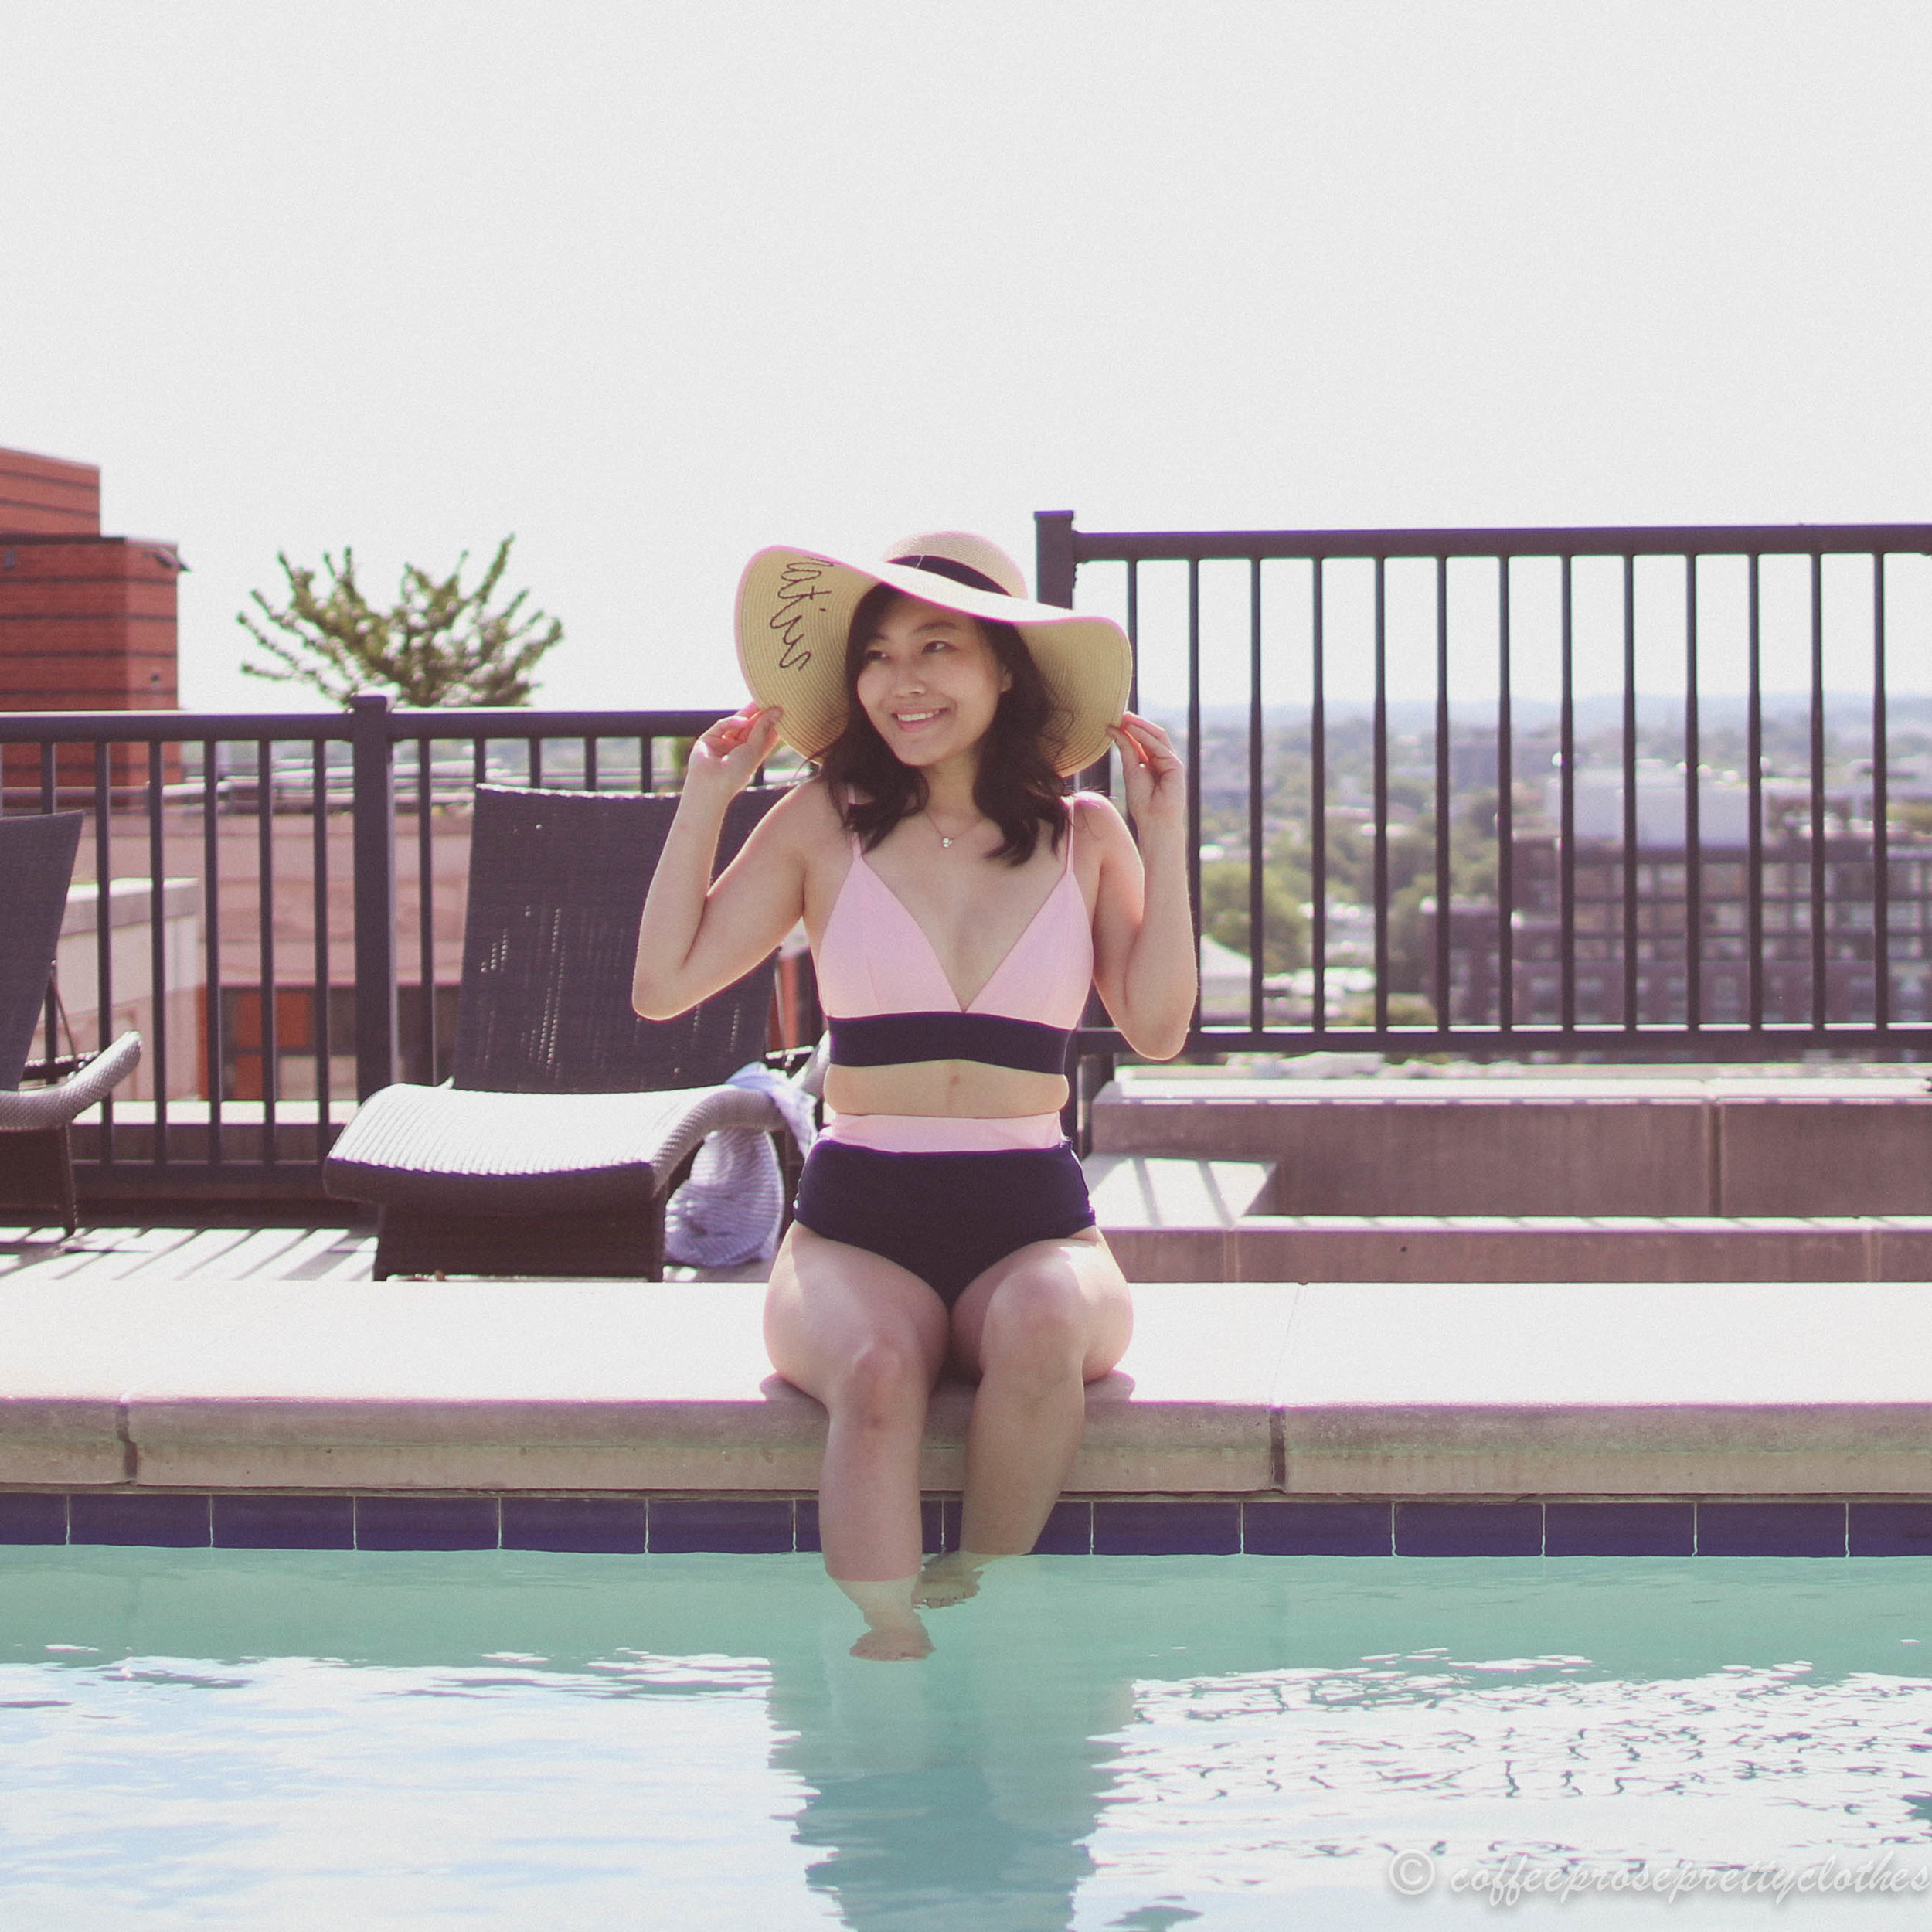 ASOS Pretty Little Thing Swimsuit and J.Crew Straw hat